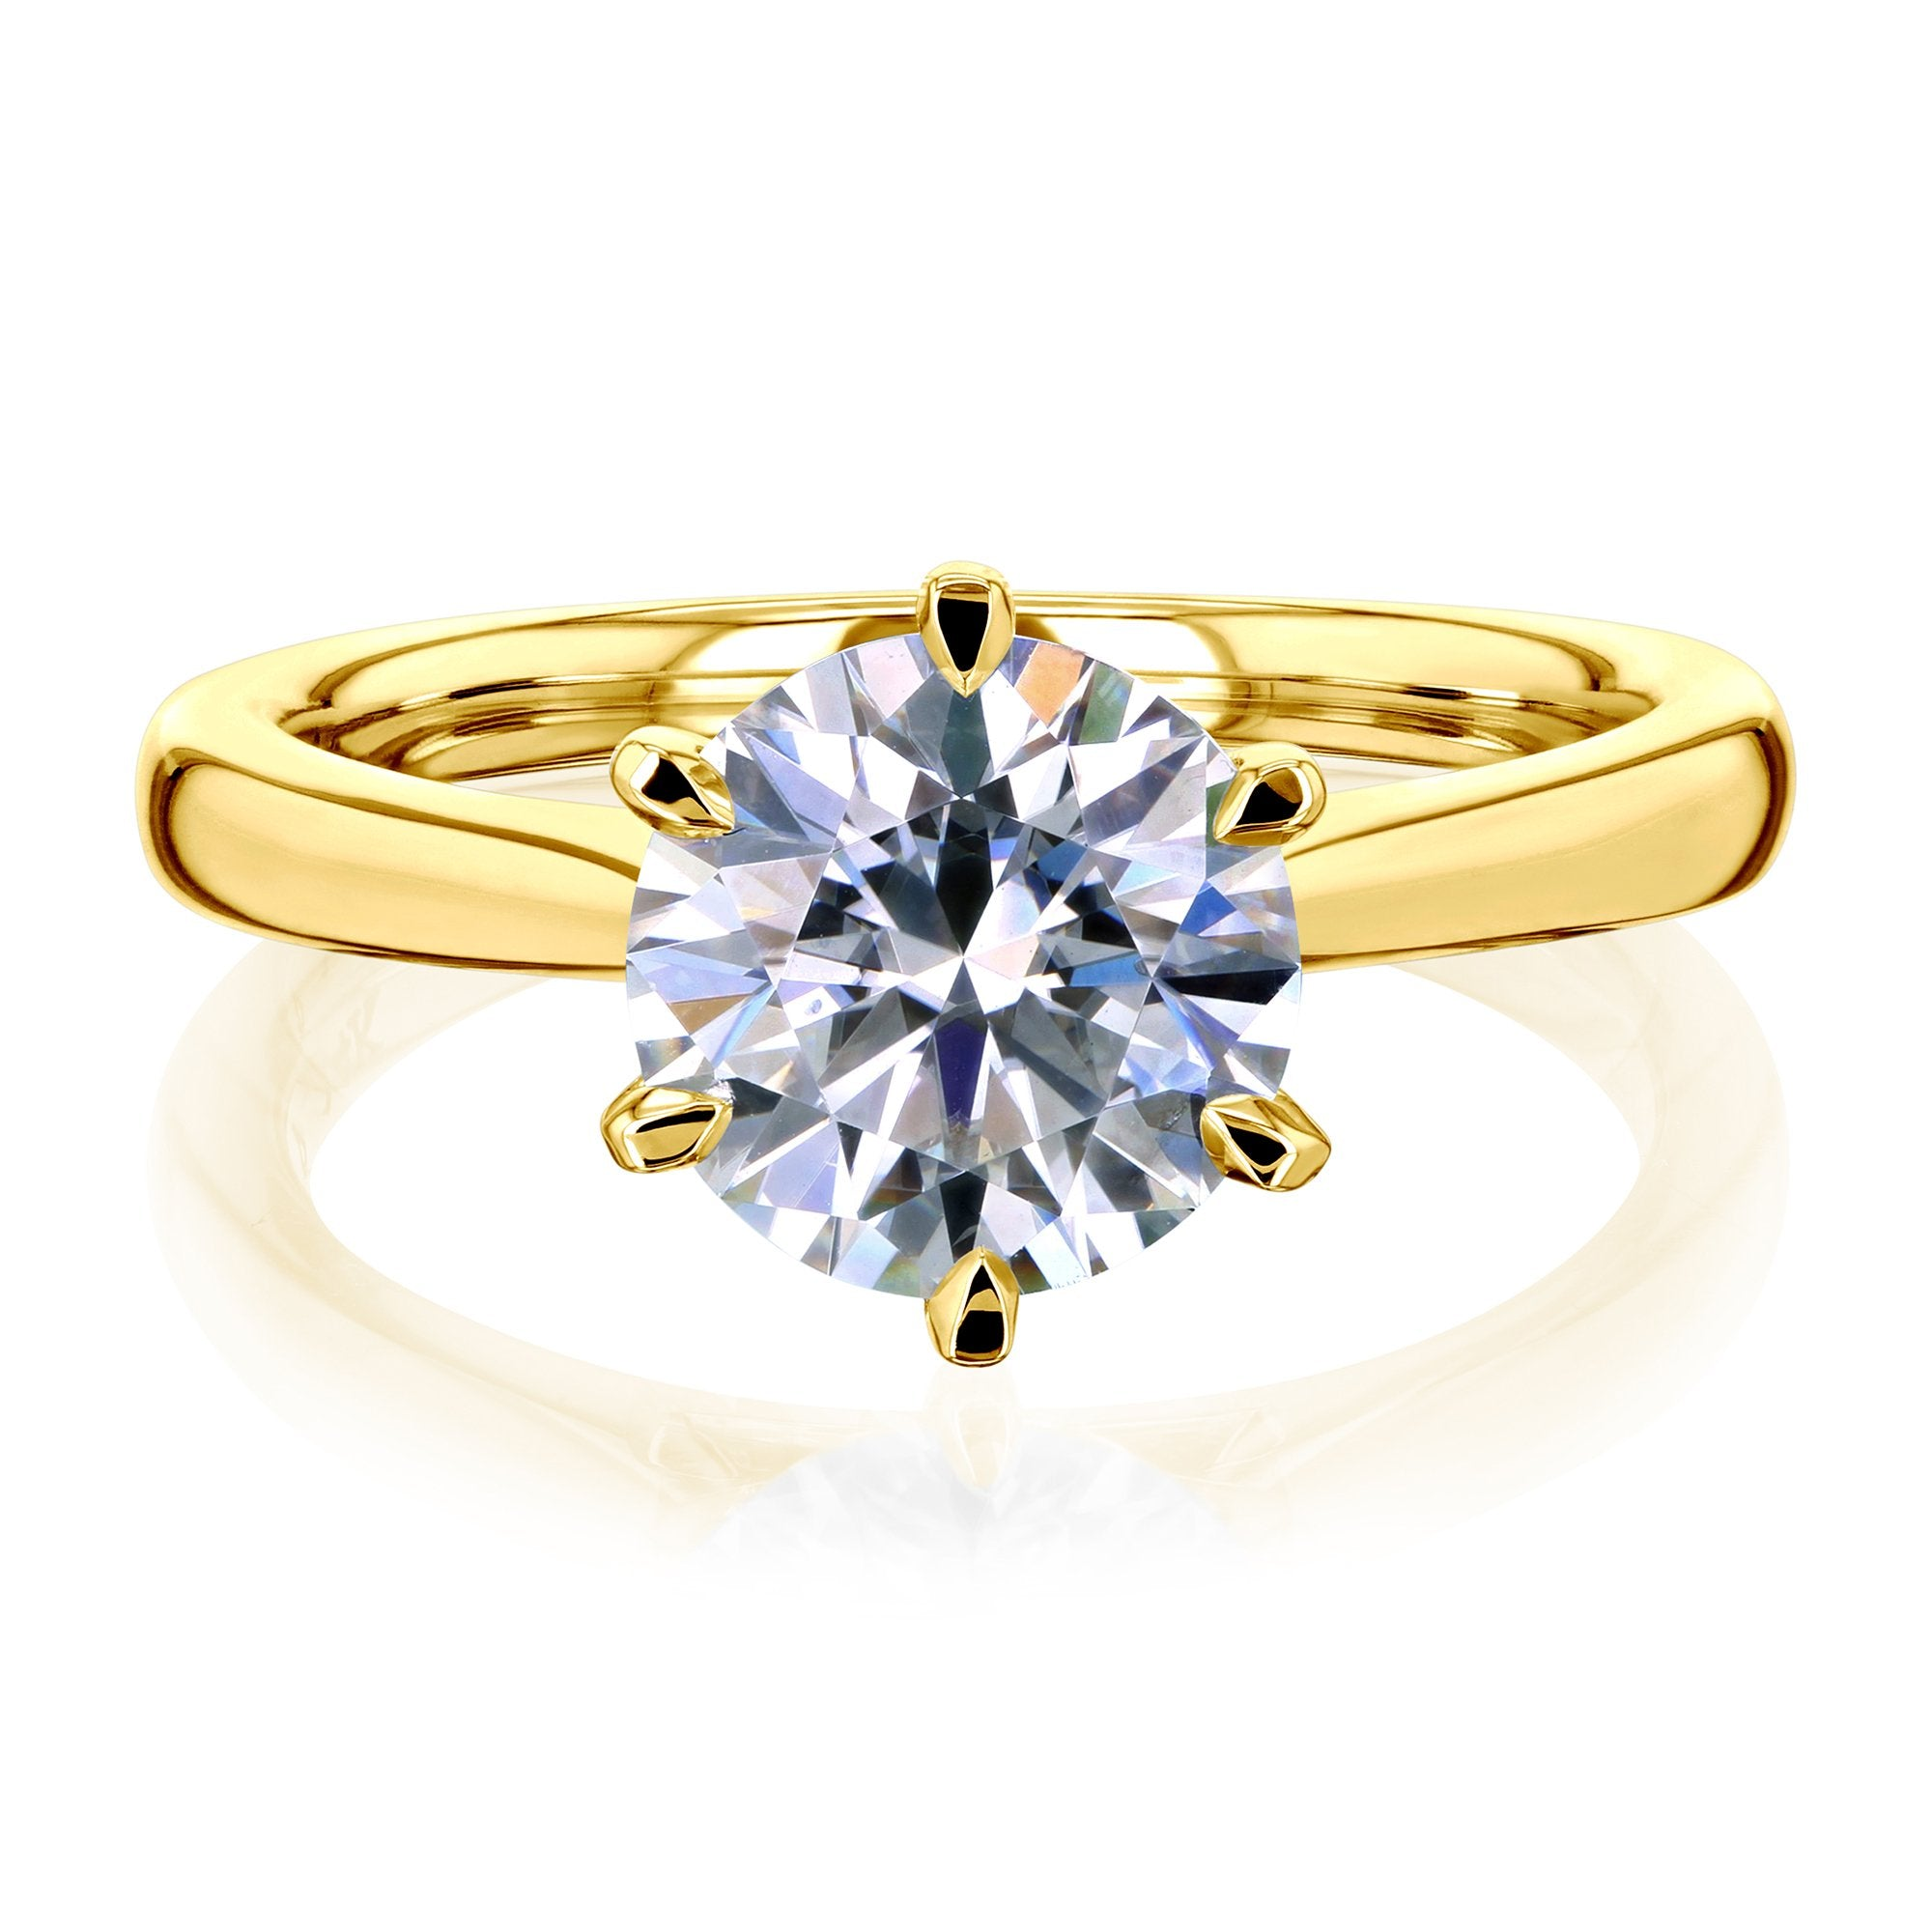 Discounts 1.9ct Round Moissanite 6-Prong Ring - yellow-gold 8.5 Kobelli H-I